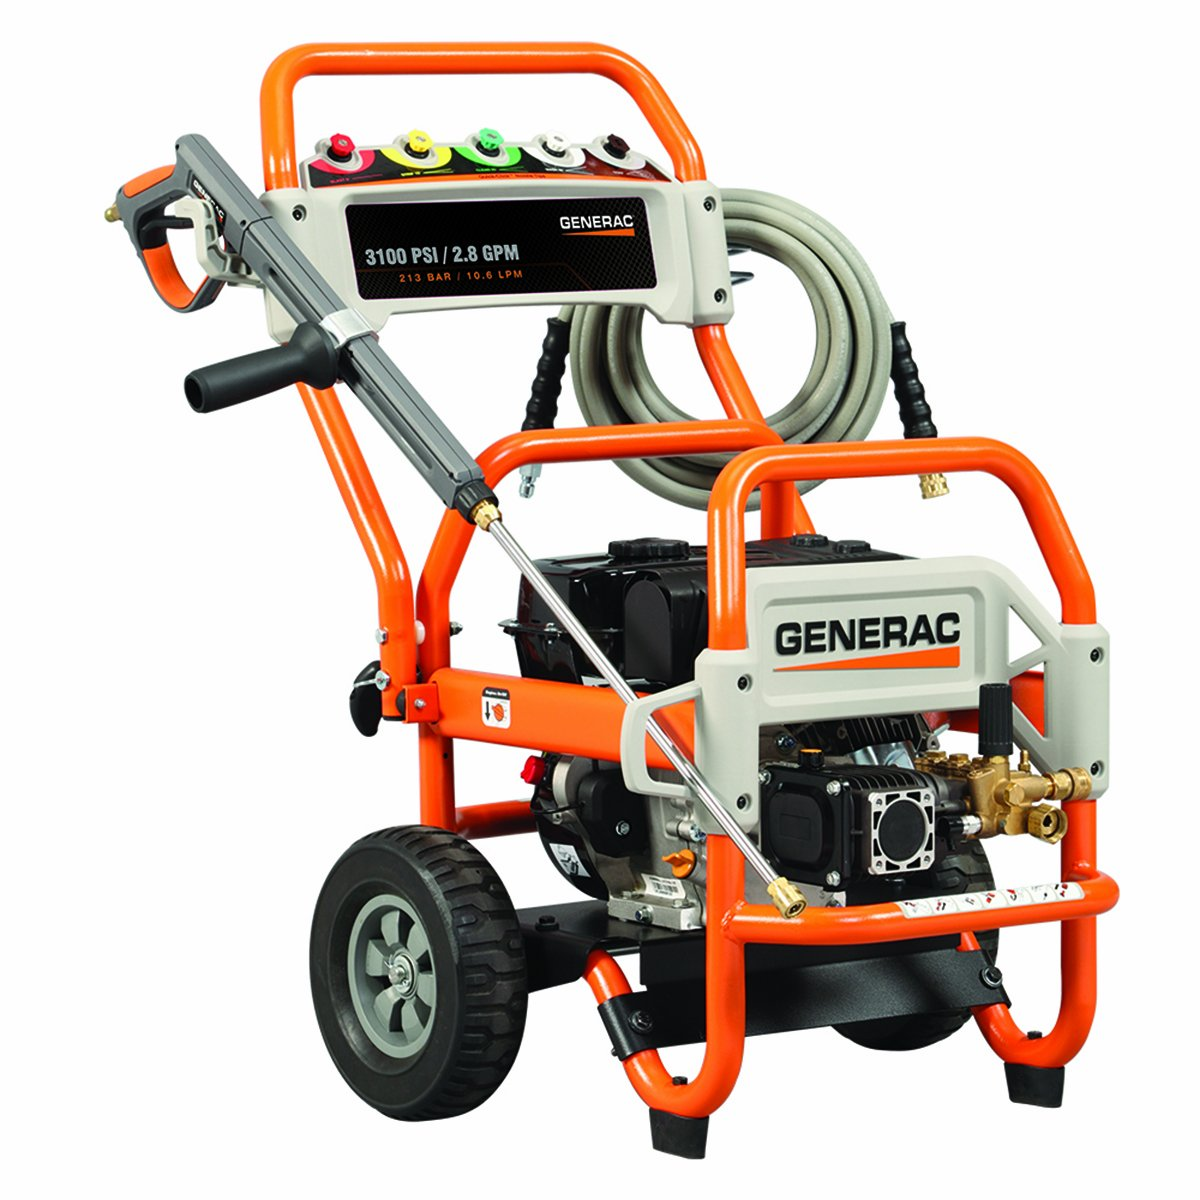 Commercial Pressure Washer ReviewsBest Pressure Washer Reviews 2018